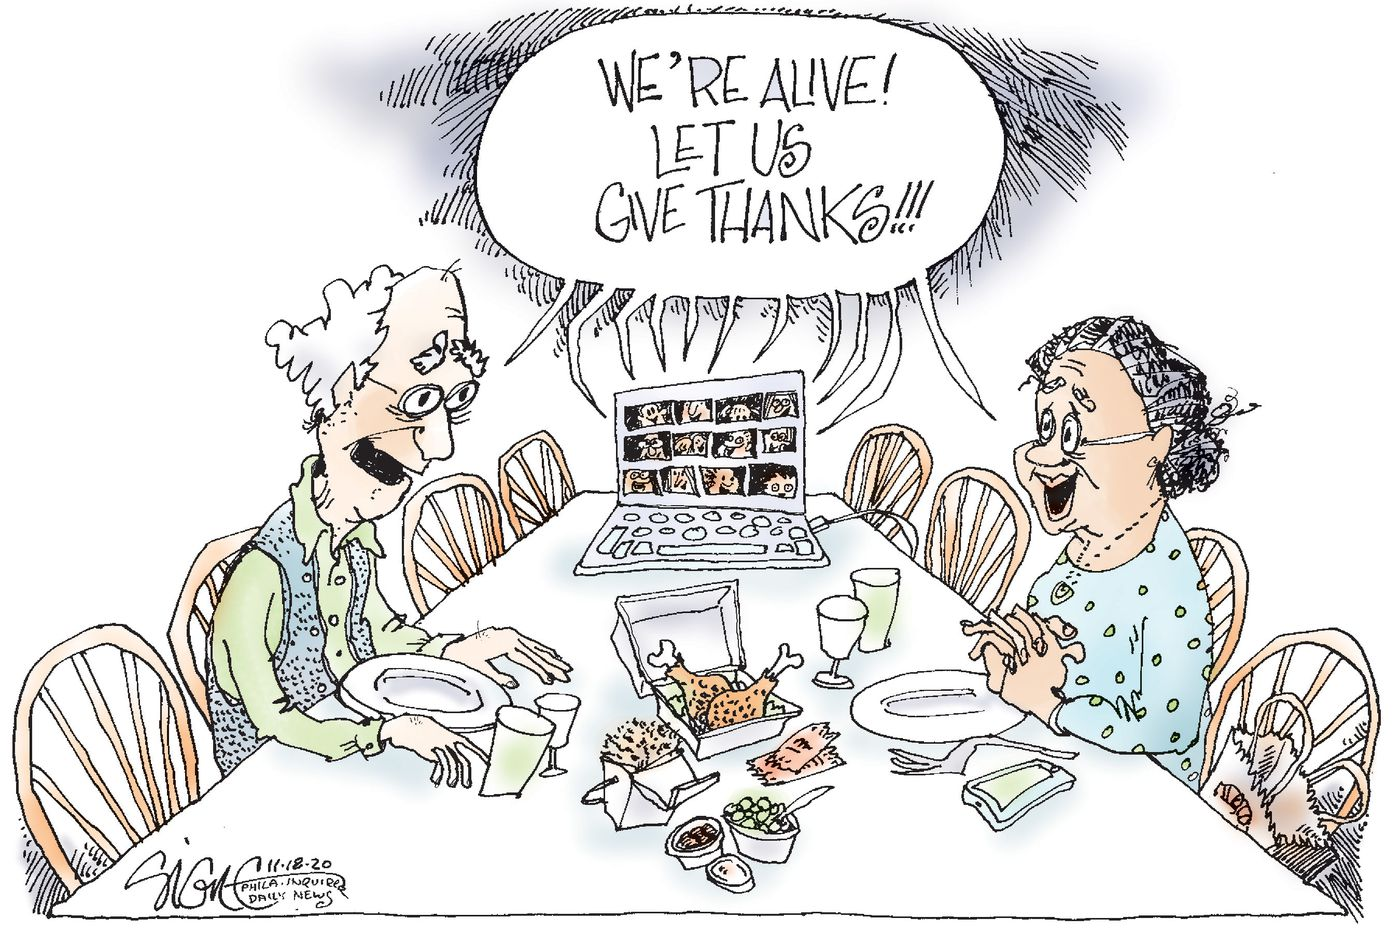 Political Cartoon: Giving thanks at our COVID-19 Thanksgiving